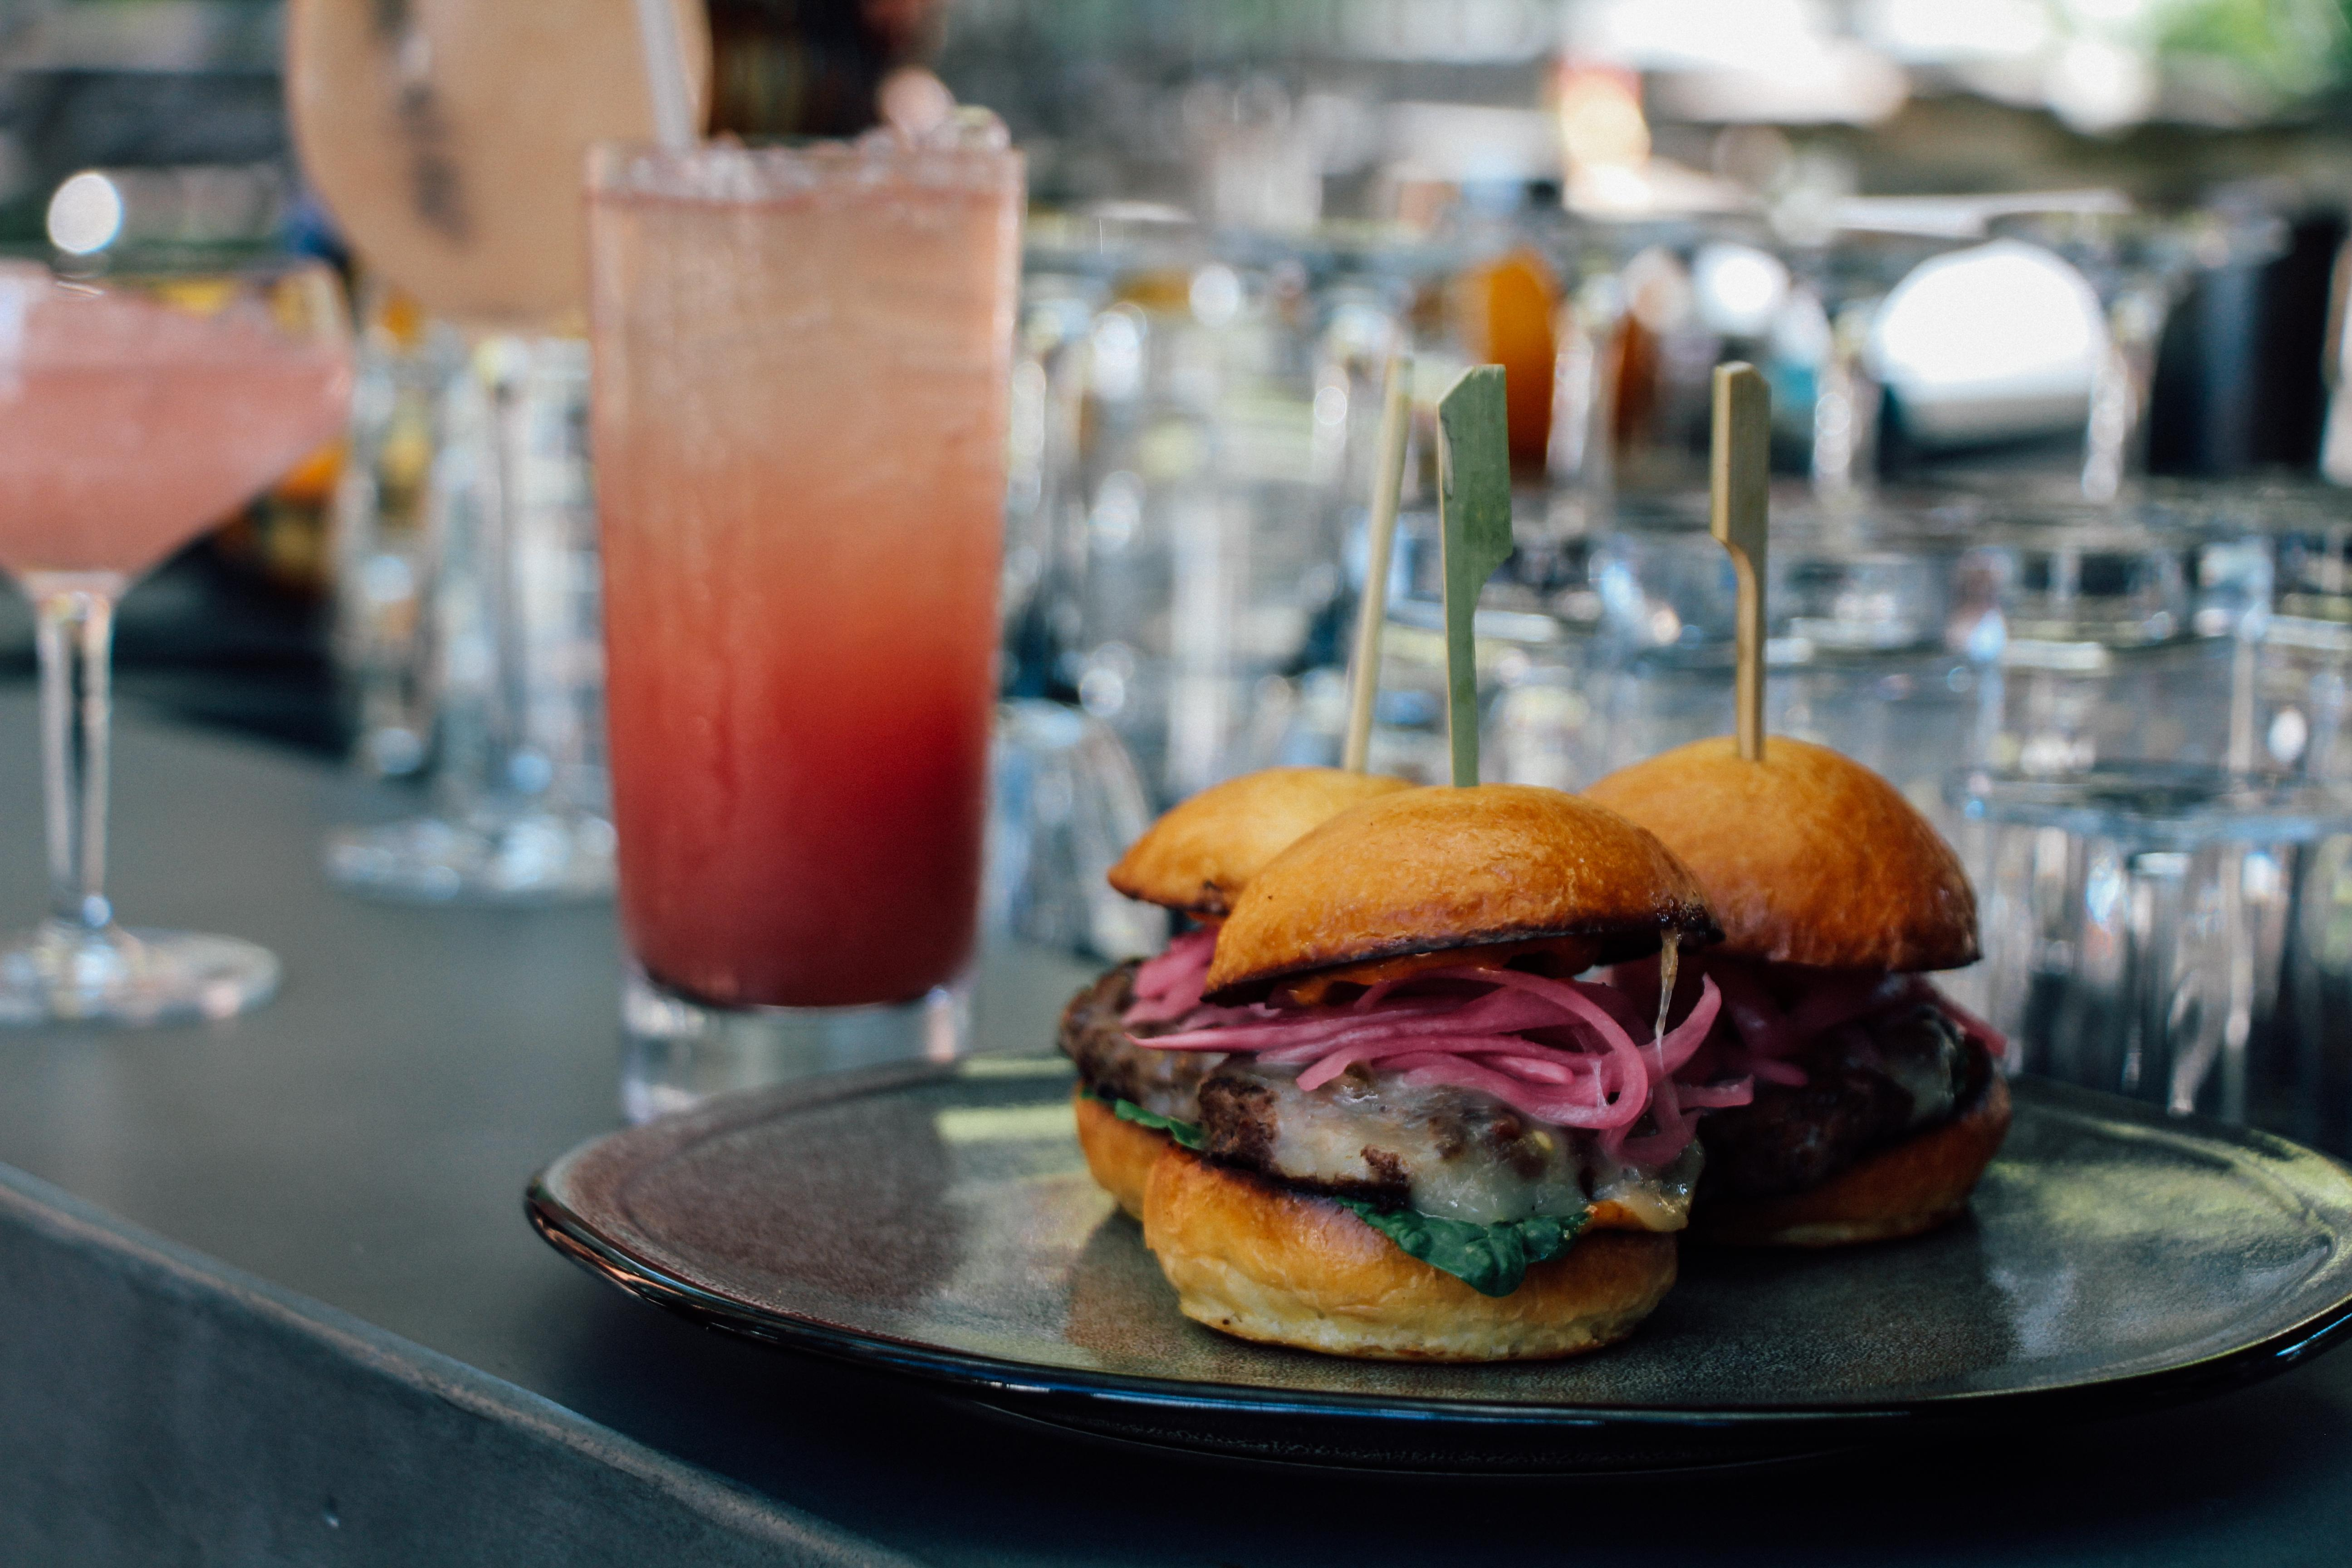 Ritz-Carlton, Georgetown Beef Slider Trio, $16 (Pickled Onion, Pepper Jack Cheese, Mayo) (Photo Credit: Ritz-Carlton, Georgetown)